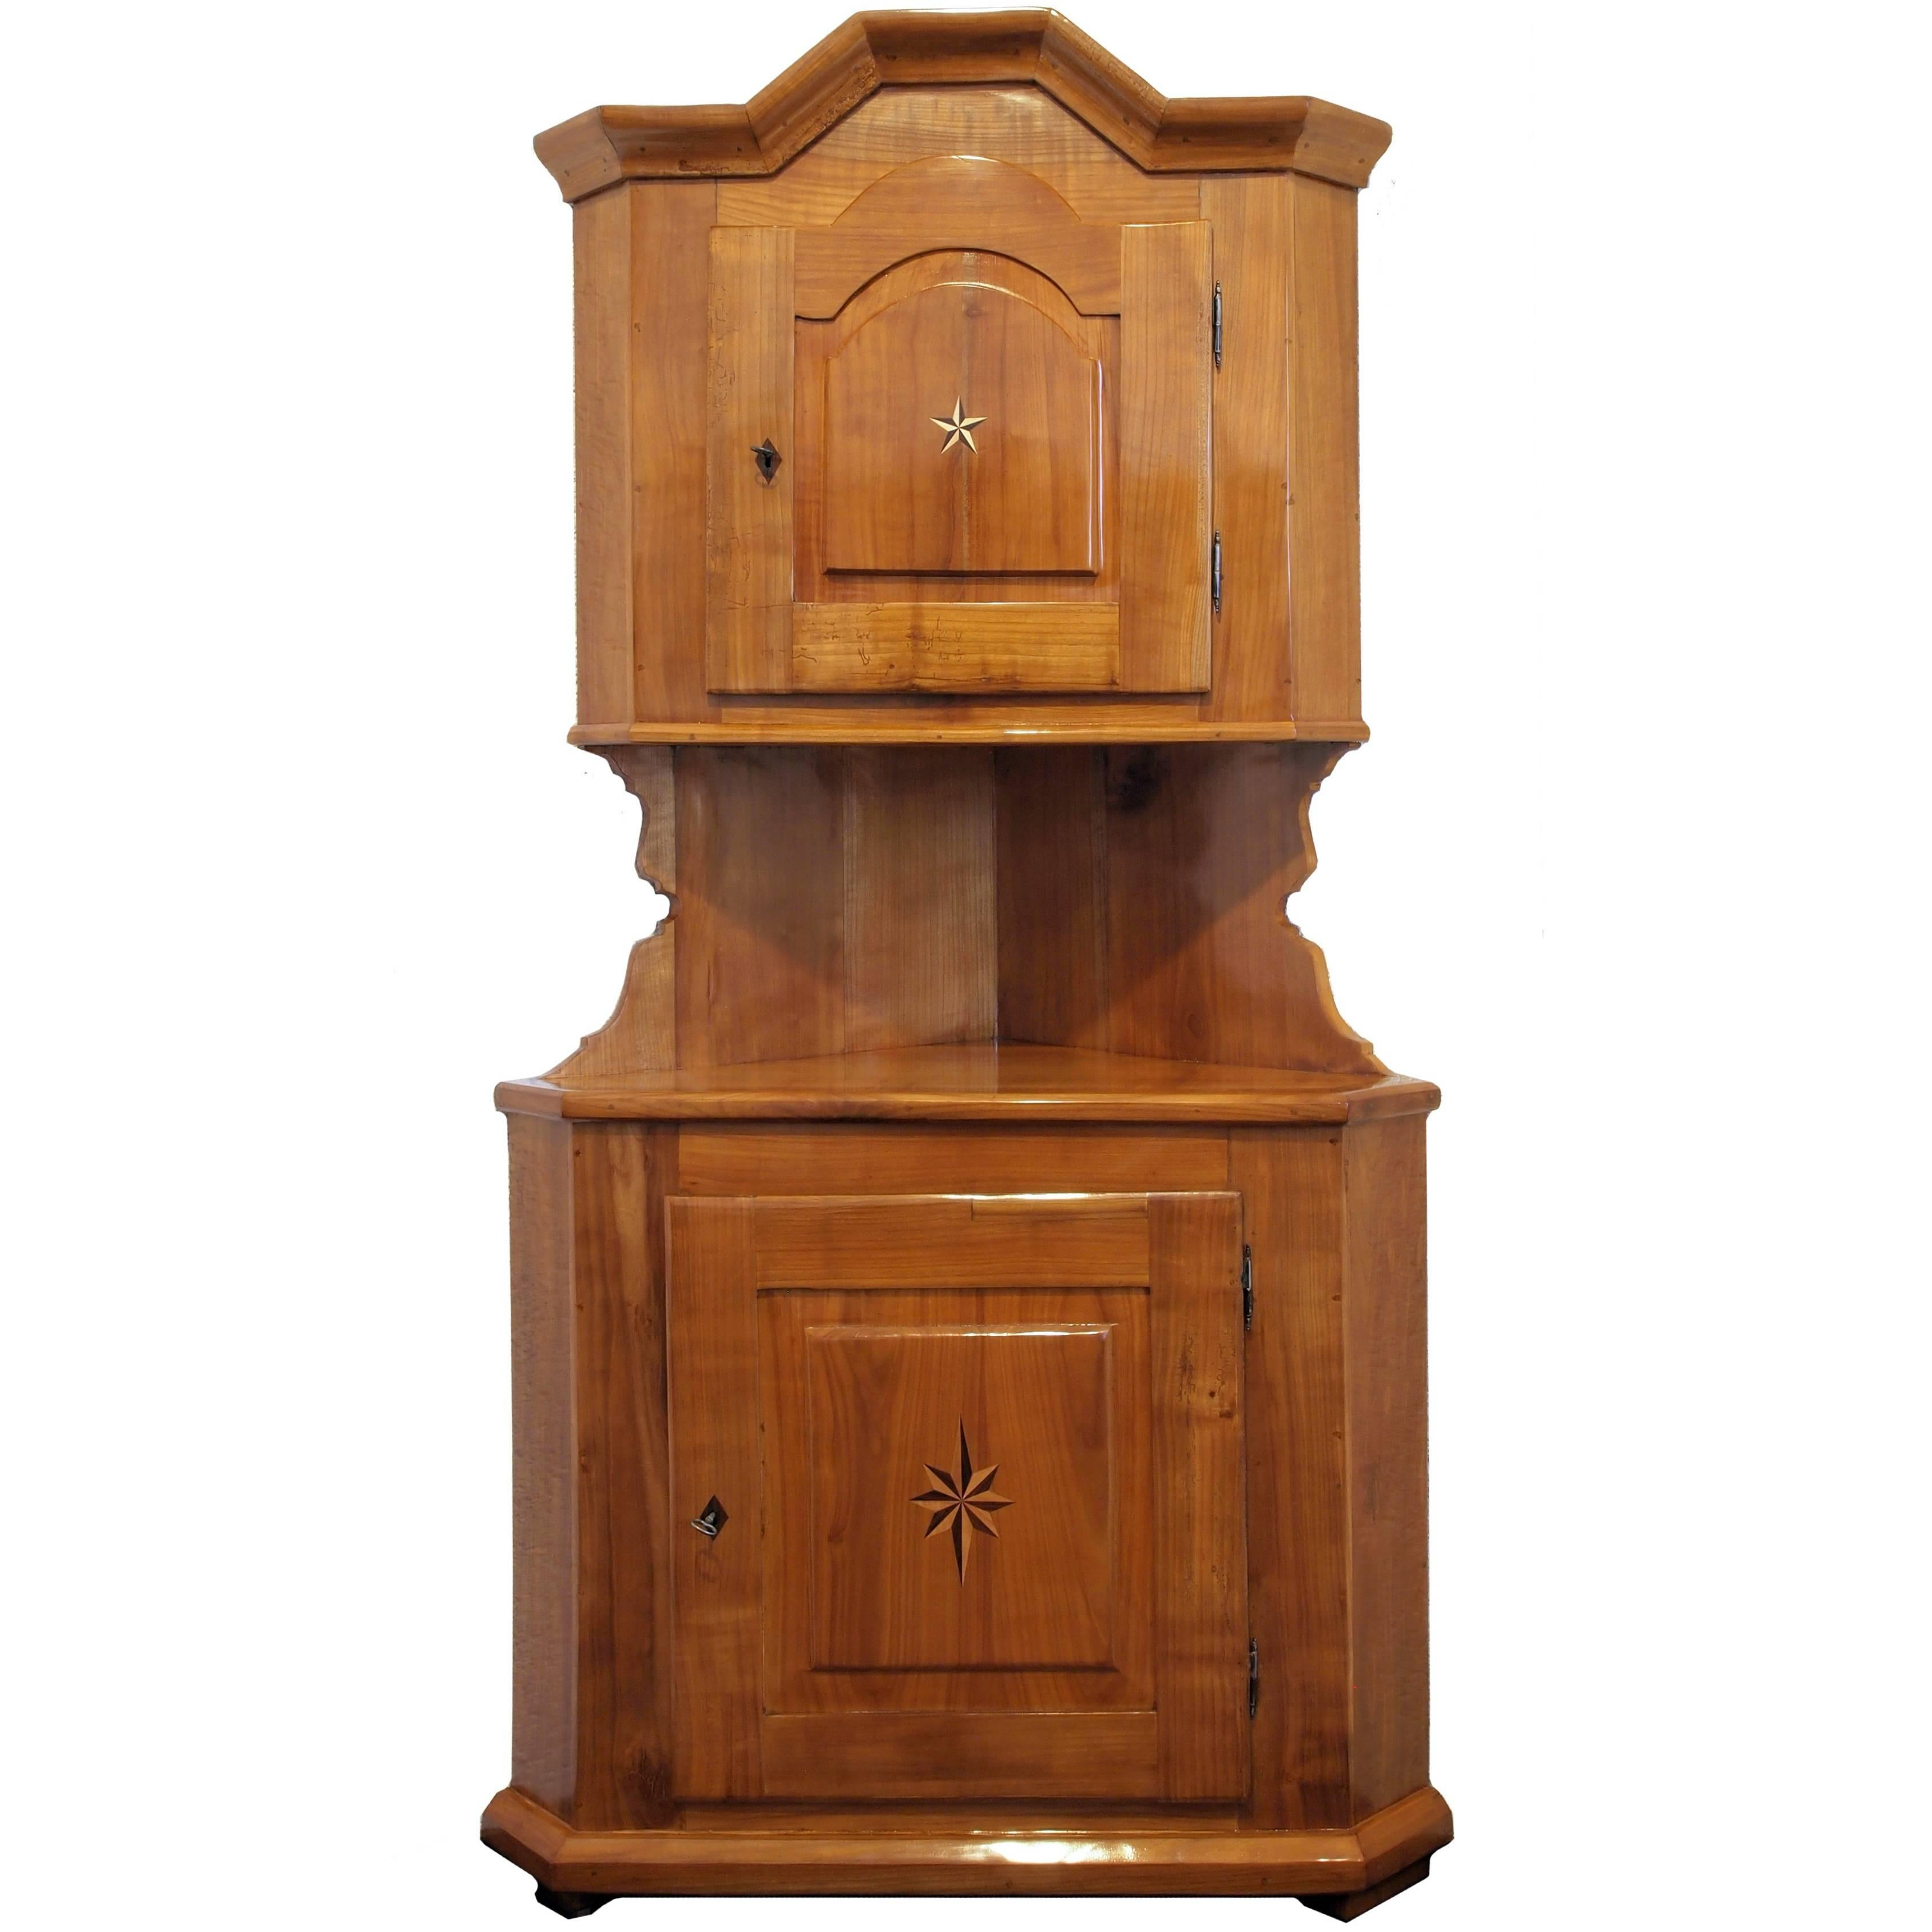 Biedermeier Case Pieces and Storage Cabinets - 454 For Sale at 1stdibs